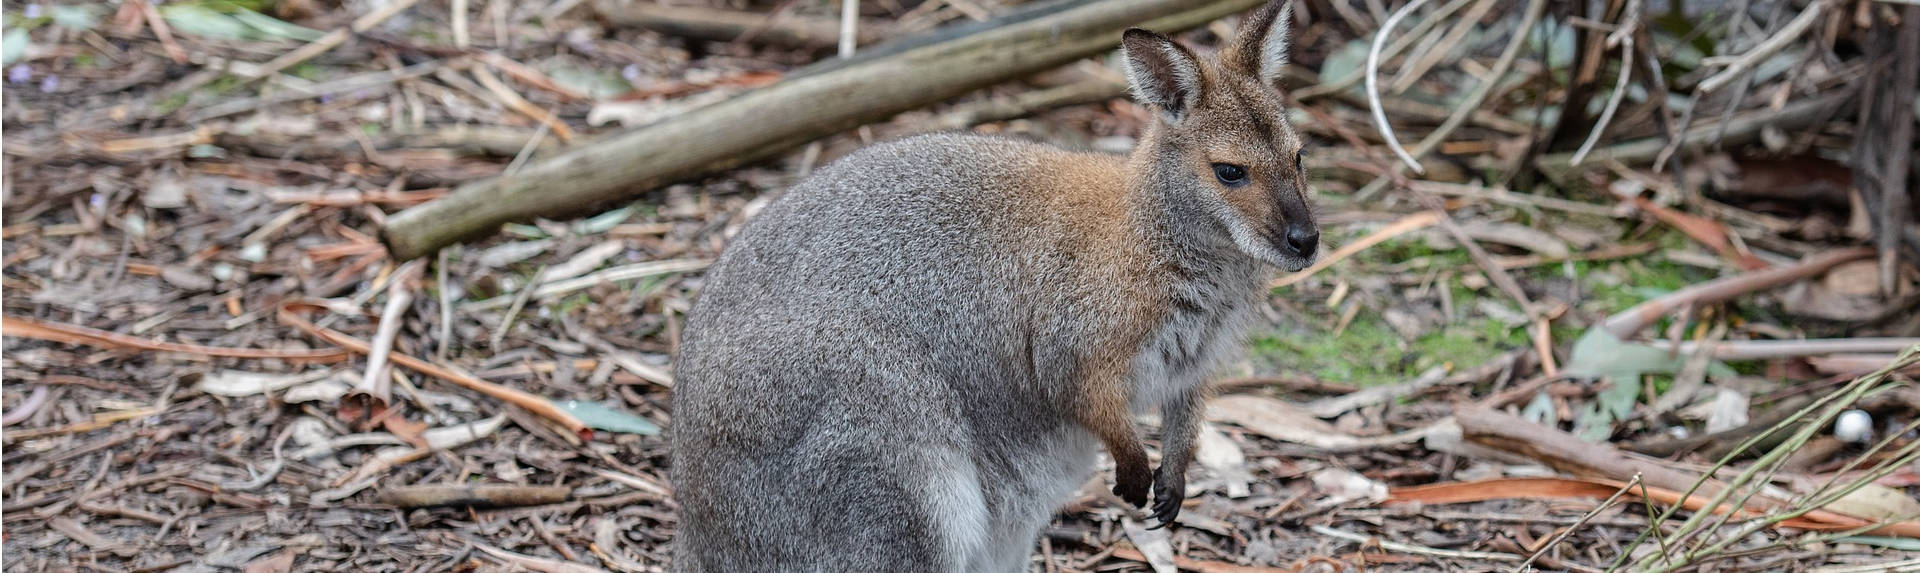 What is the difference between a Kangaroo and a Wallaby?